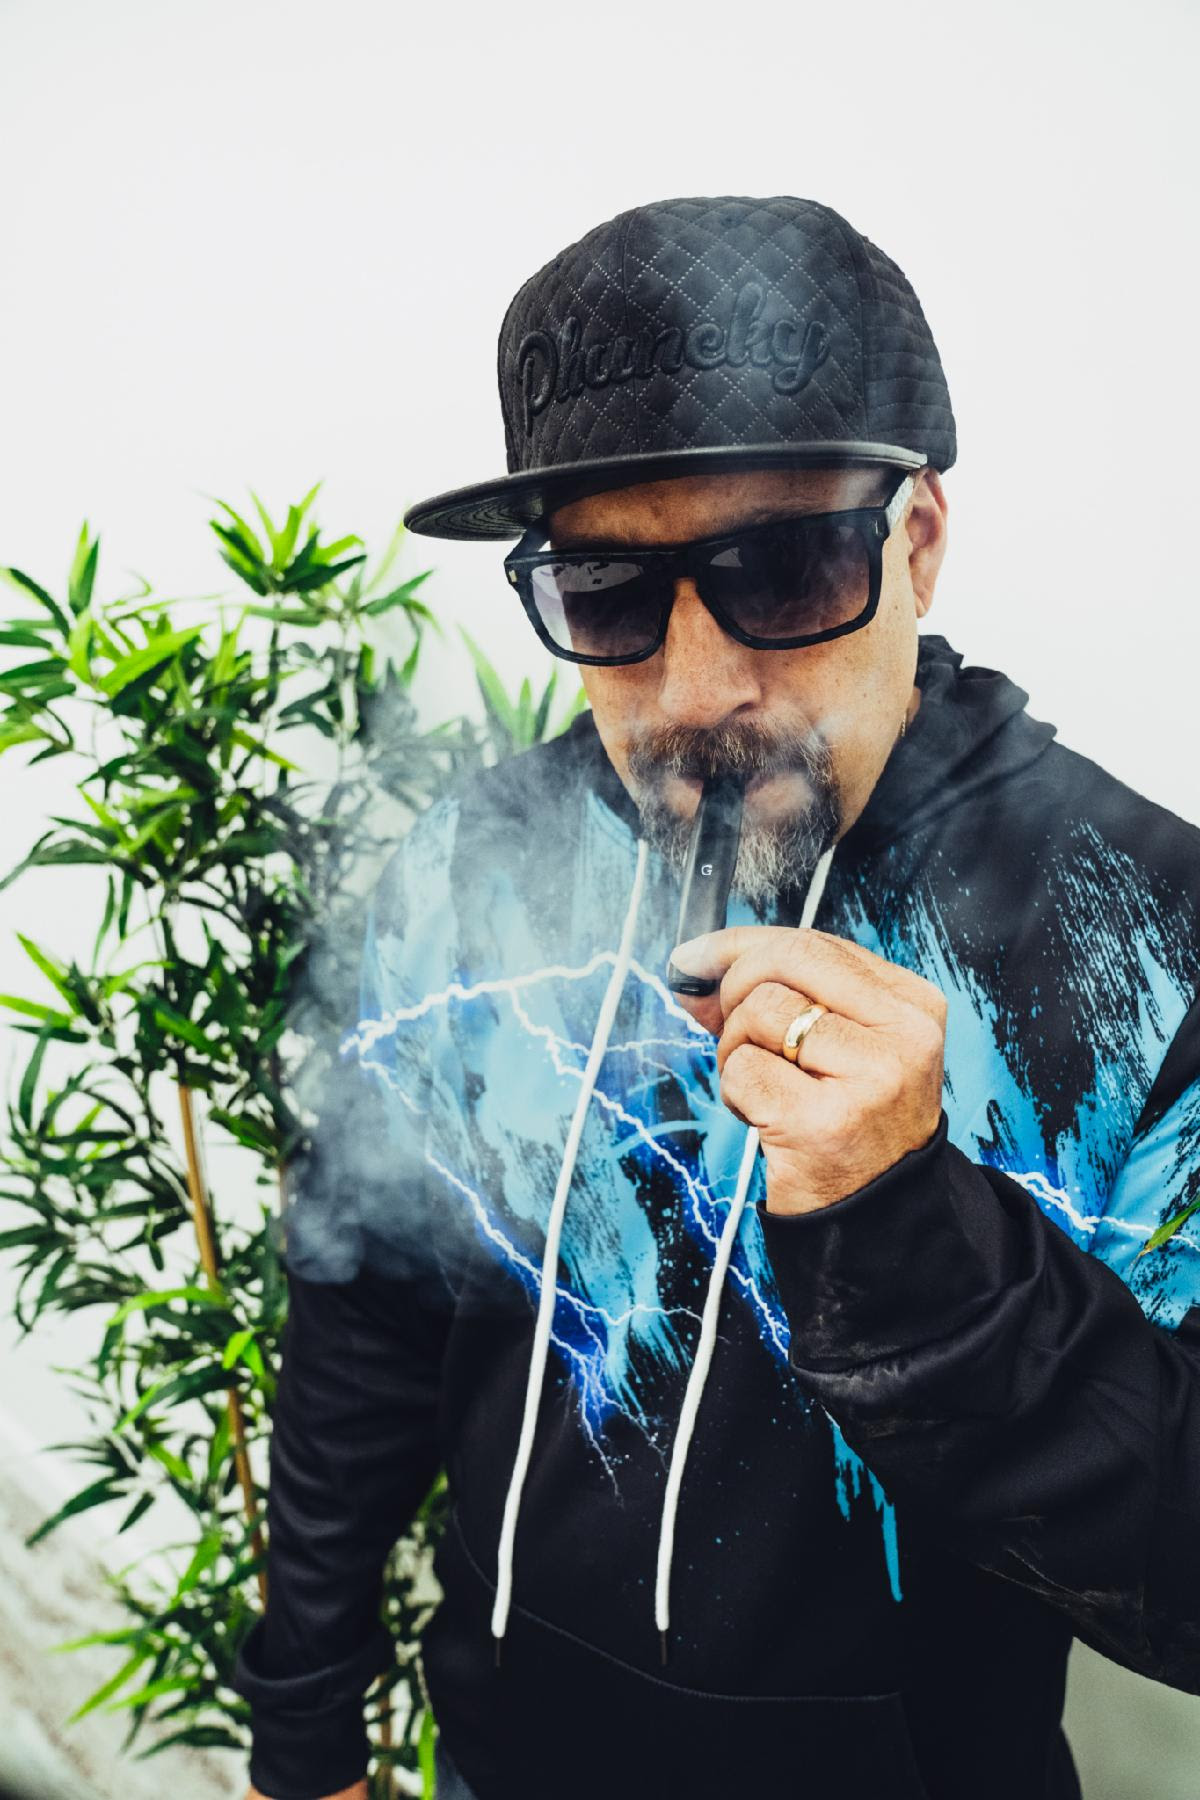 B Real Announces Brand Partnership with Grenco Science